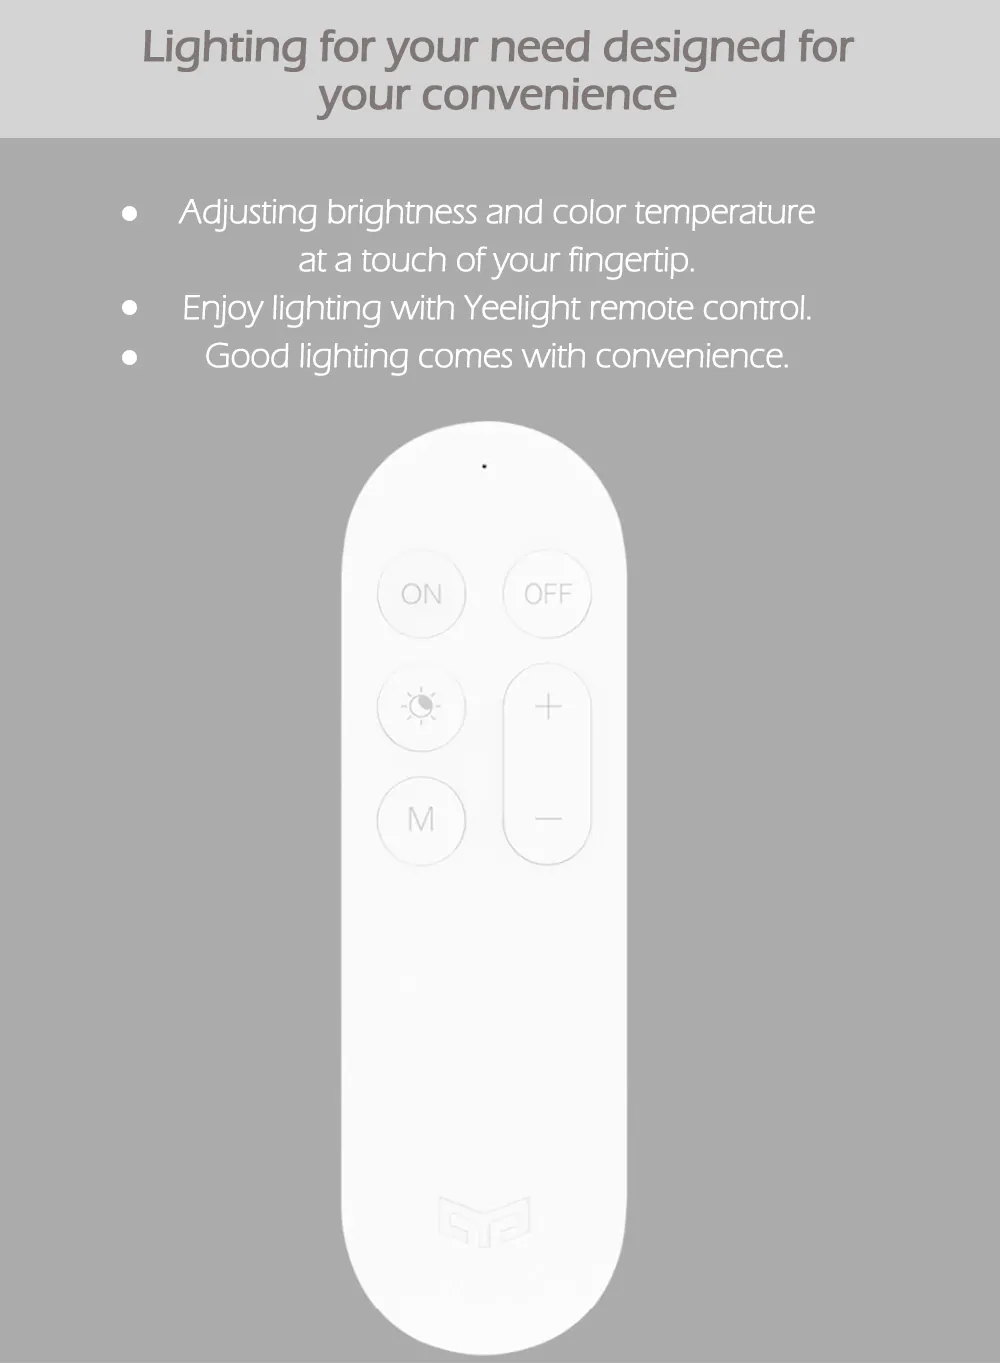 xiaomi yeelight remote control for sale